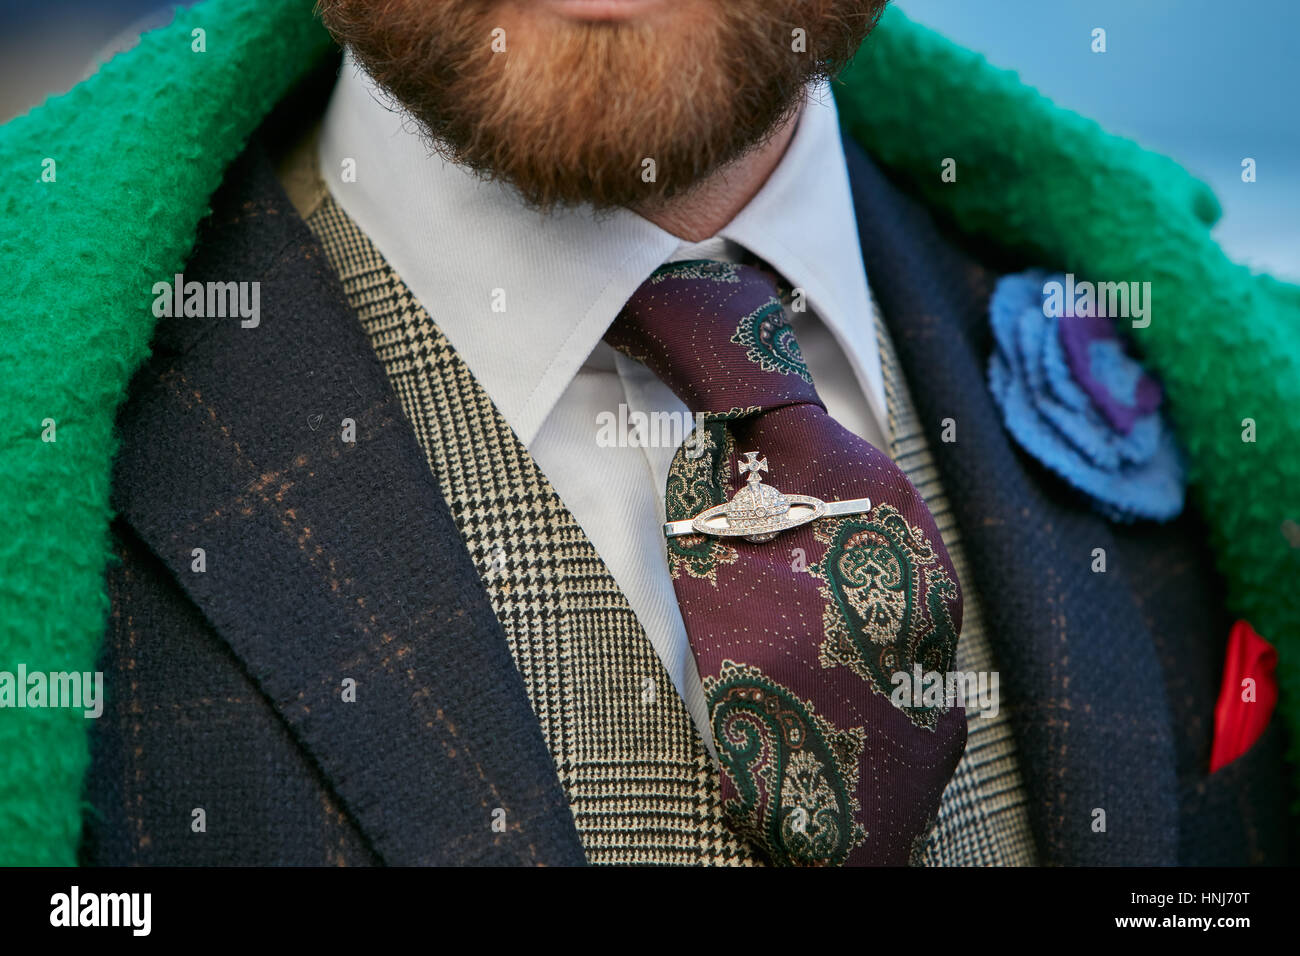 Man with green jacket and Vivienne Westwood tie clip before Salvatore Ferragamo fashion show, Milan Fashion Week - Stock Image